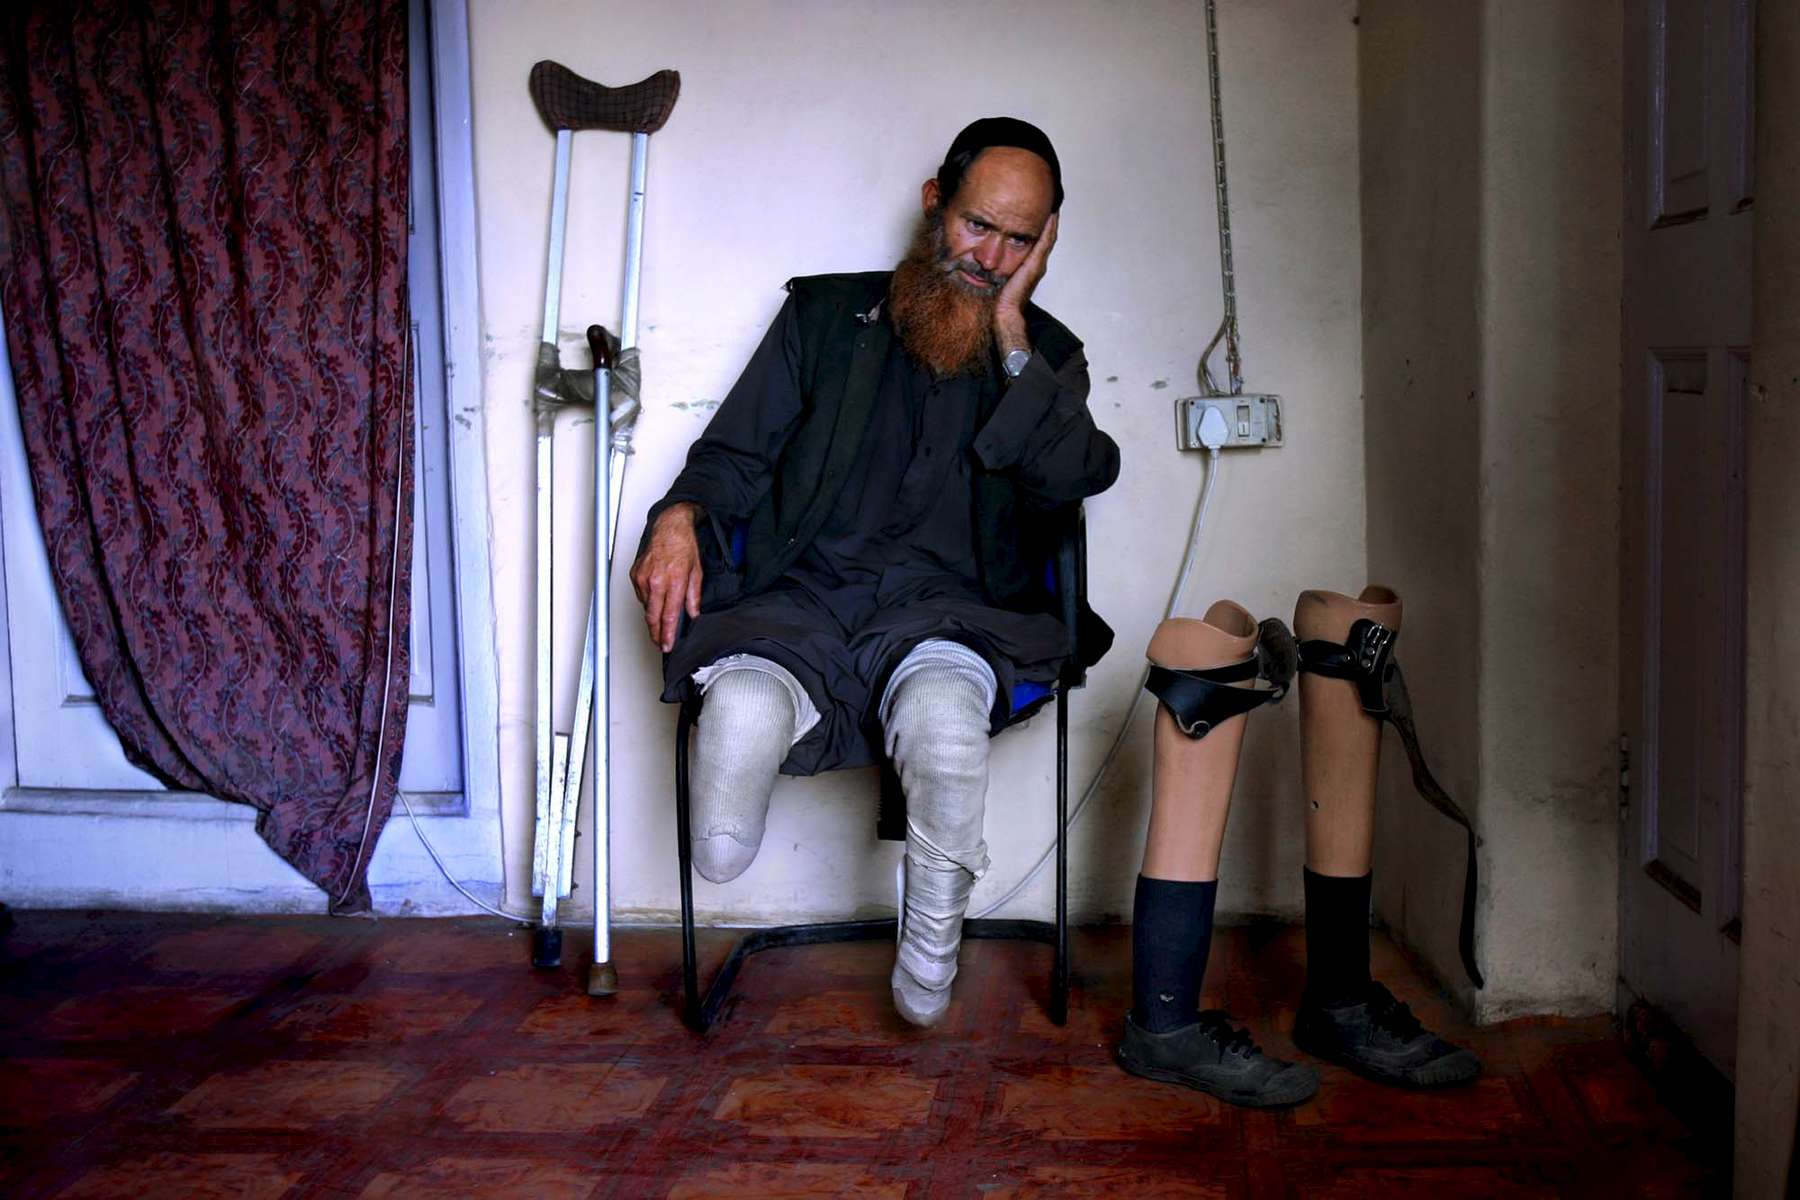 Kashmiri resident Gulzar Ahmed lost sections of both his legs to a land mine in rural Kashmir near the Pakistan border. Here he waits to talk more with legal aids to figure out what action he might take against the Indian government.